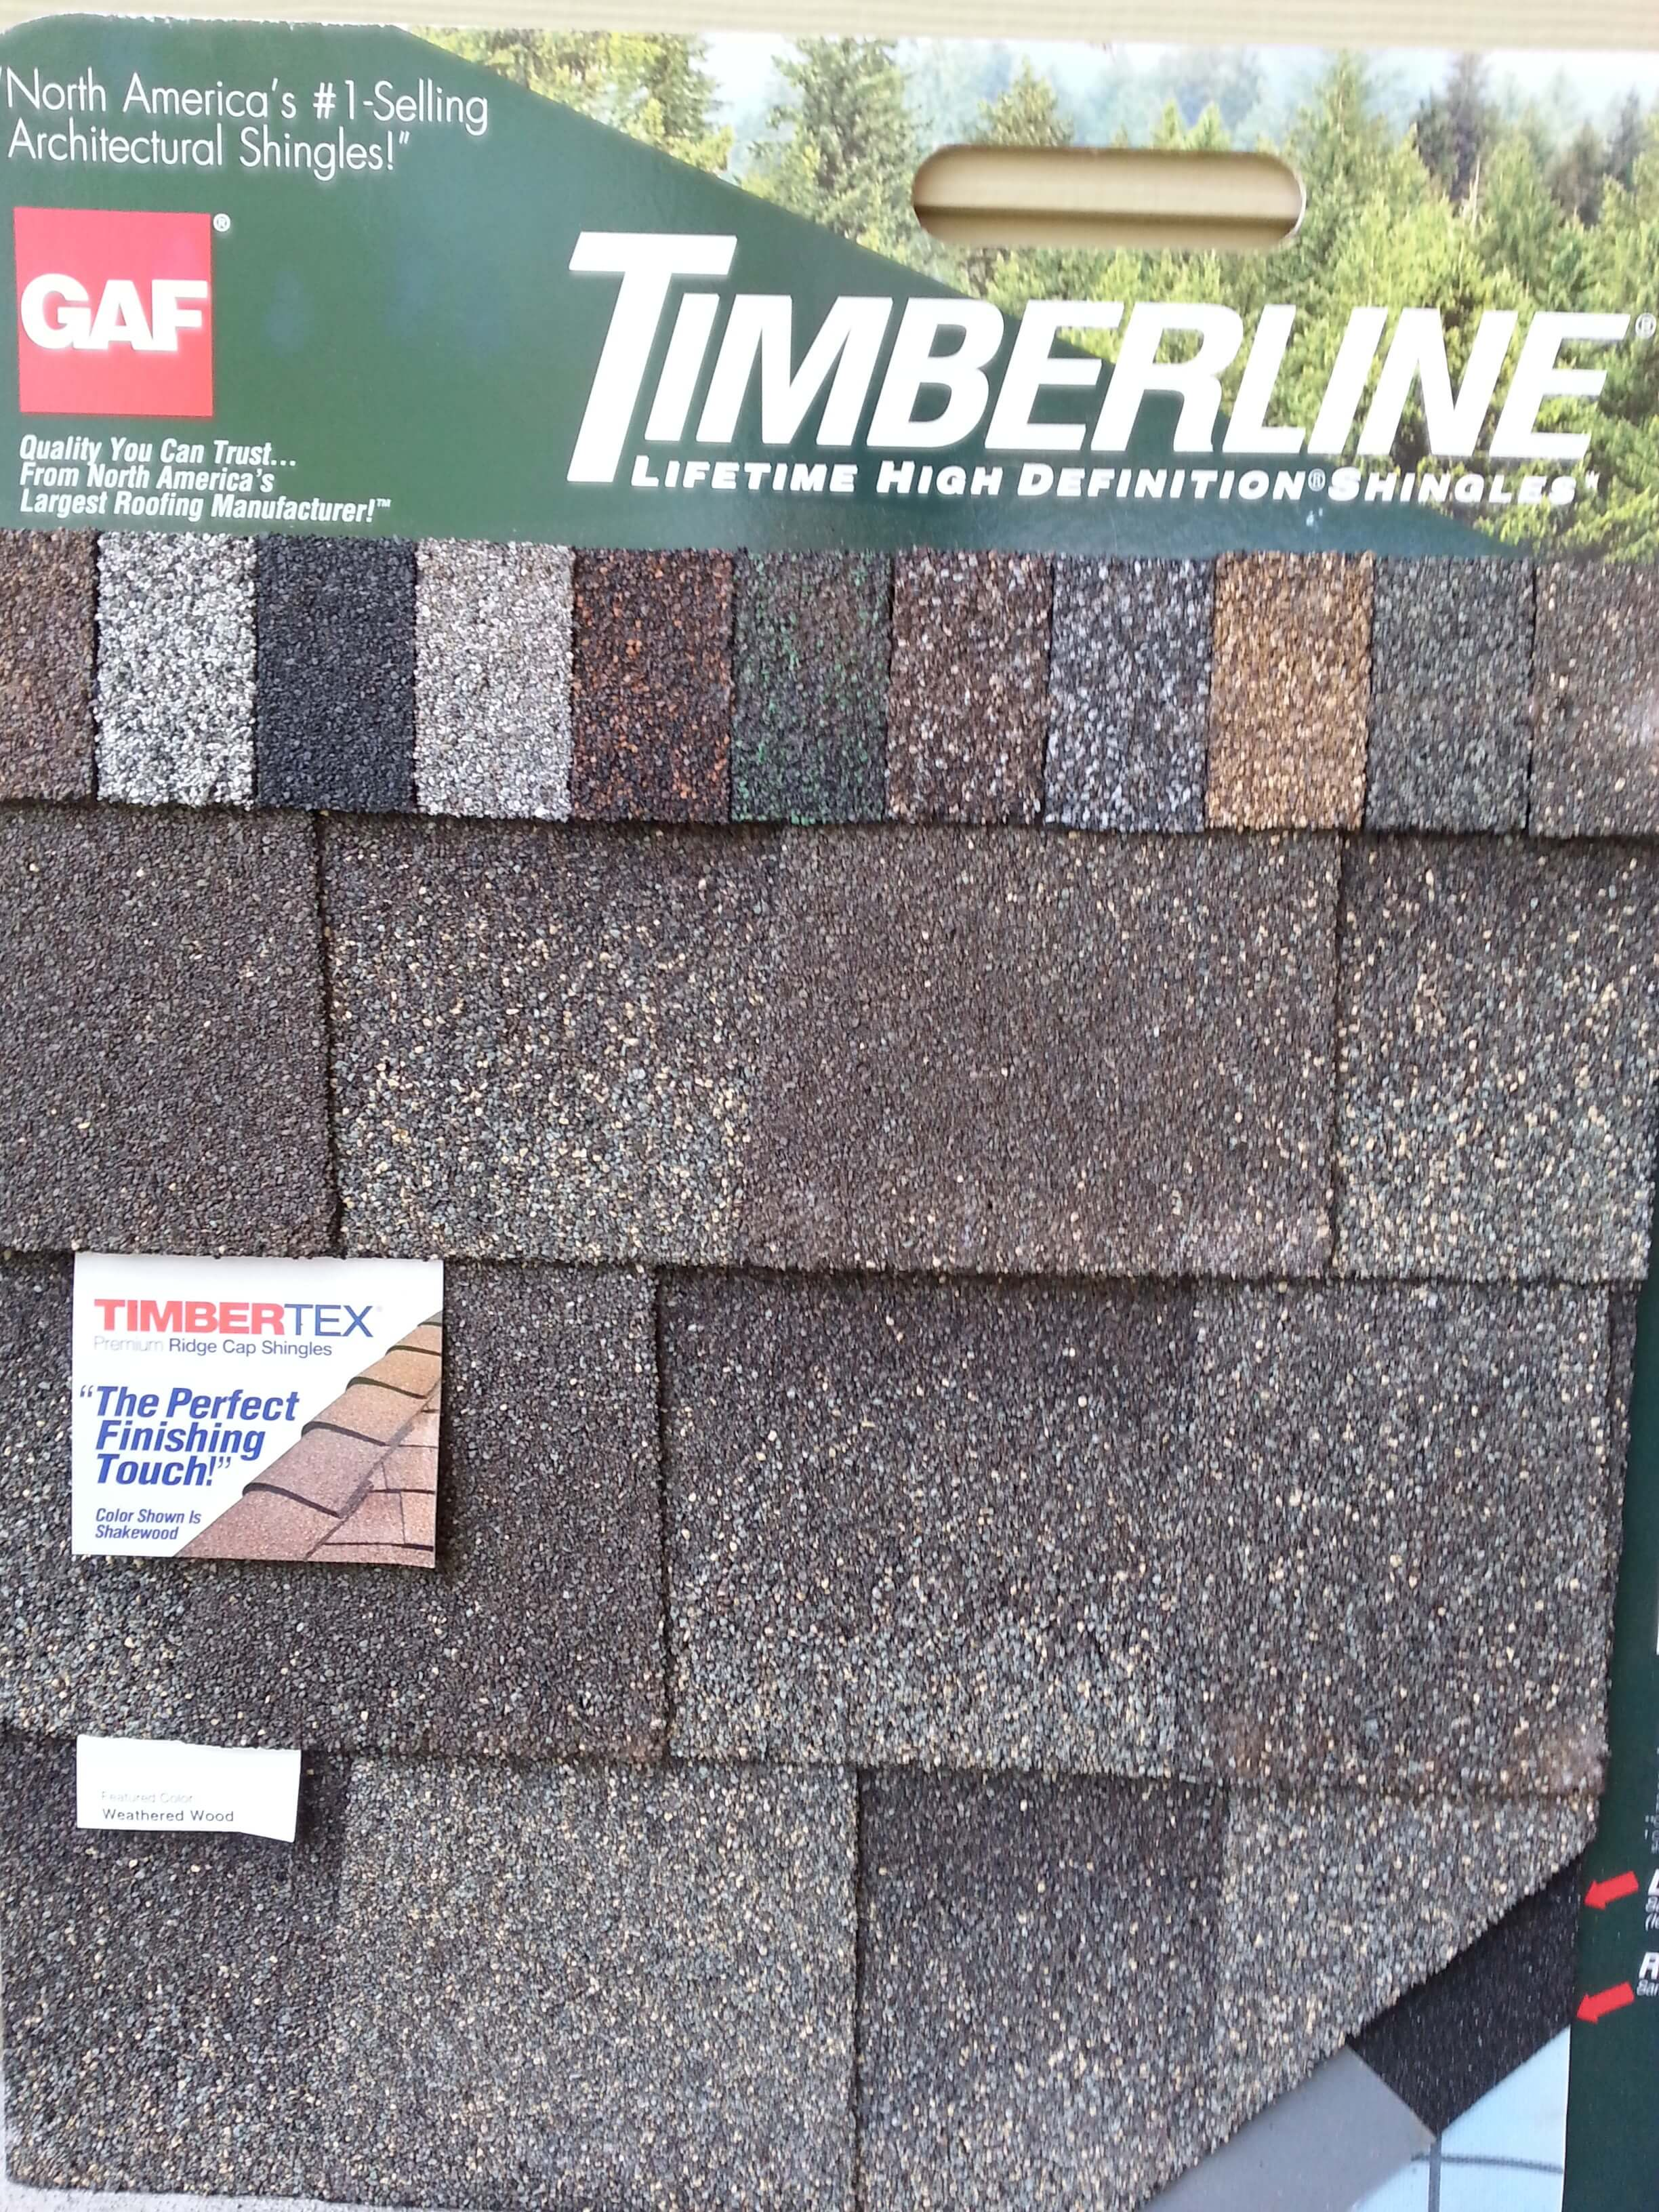 GAF Shingles & Roof Replacement Part 1: Should Contractors Use GAF Owens Corning ...